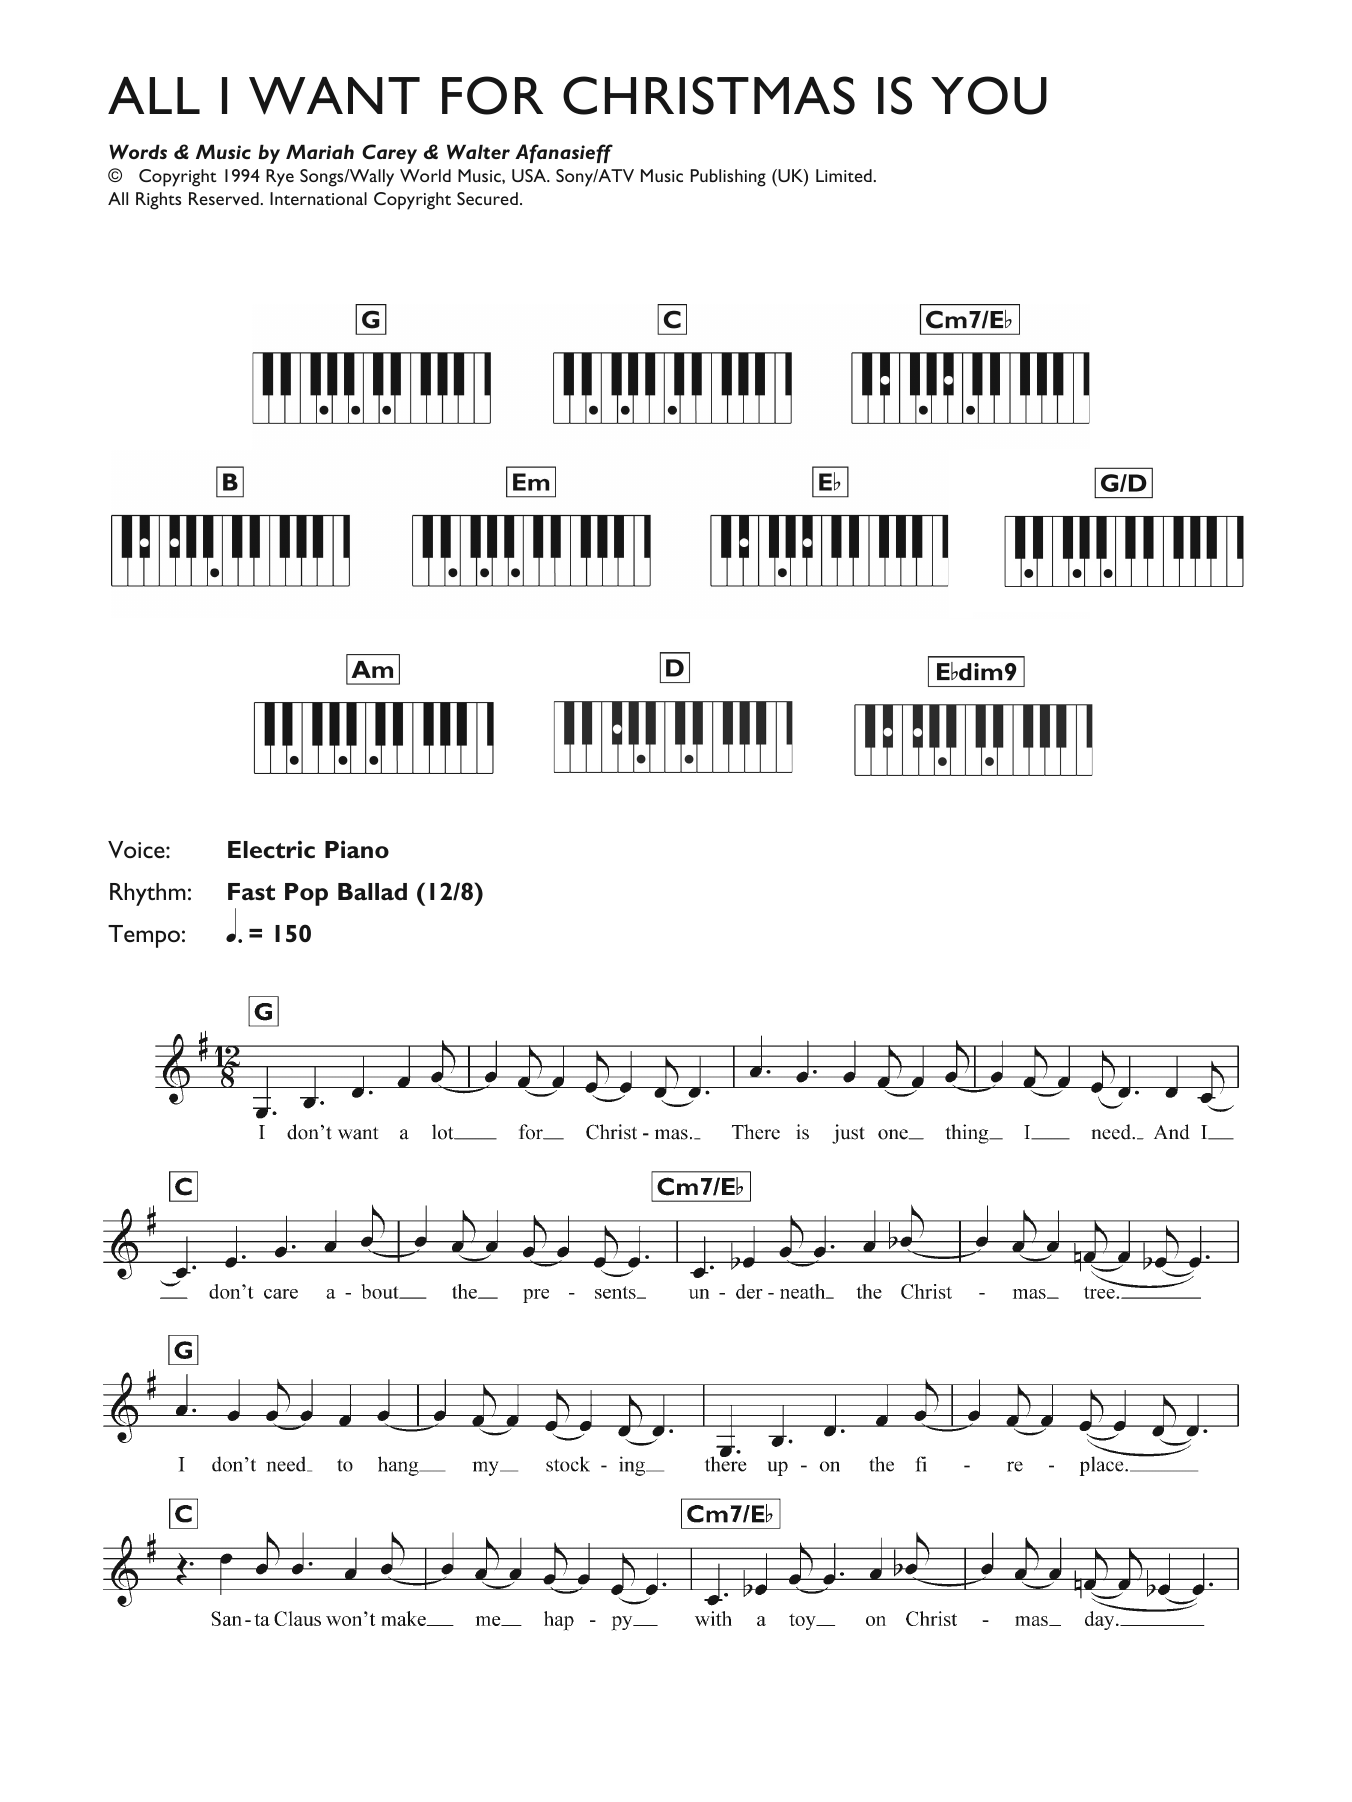 All I Want For Christmas Is You Piano Sheet Music With Letters.All I Want For Christmas Is You Sheet Music Mariah Carey